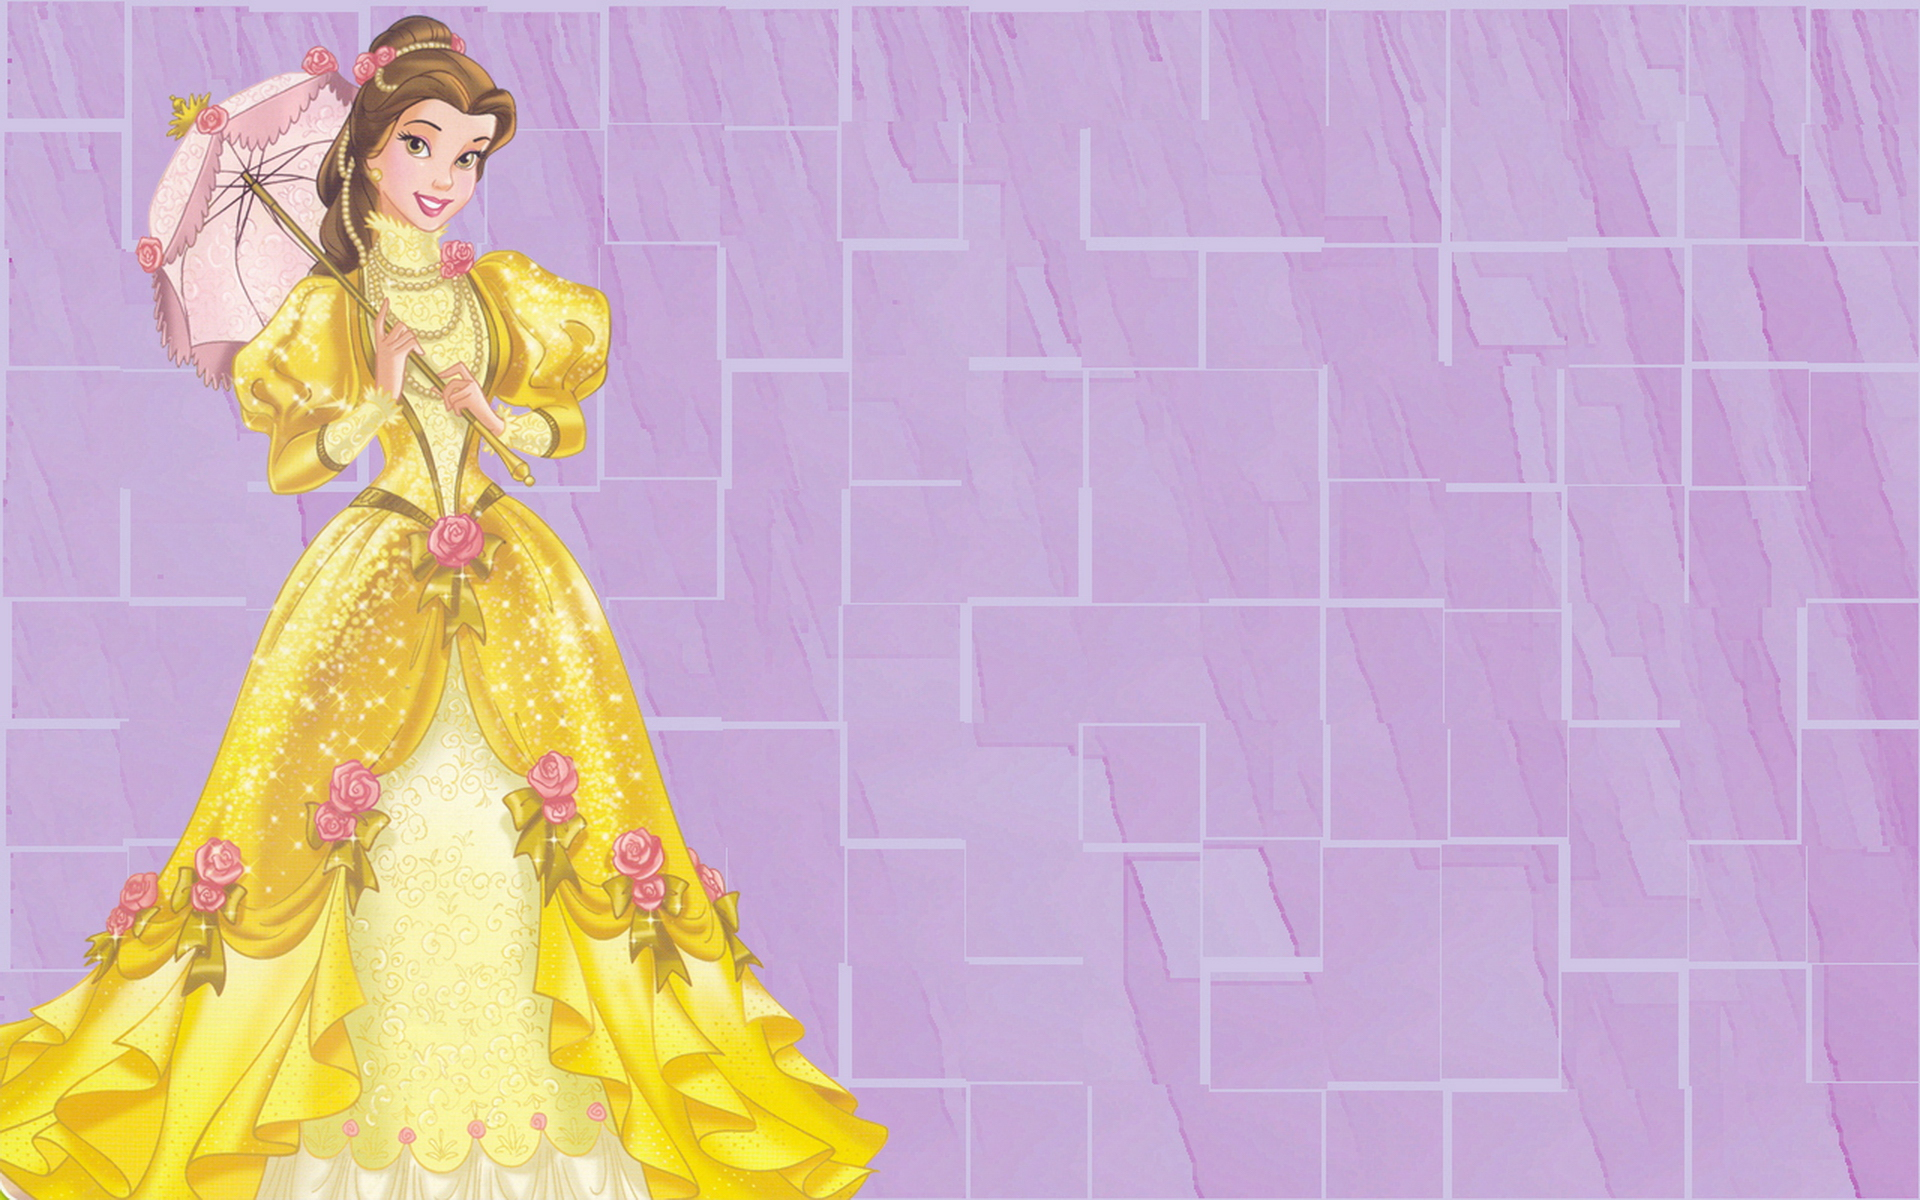 Cute Mermaid Wallpaper Princess Belle Mickey Mouse Pictures